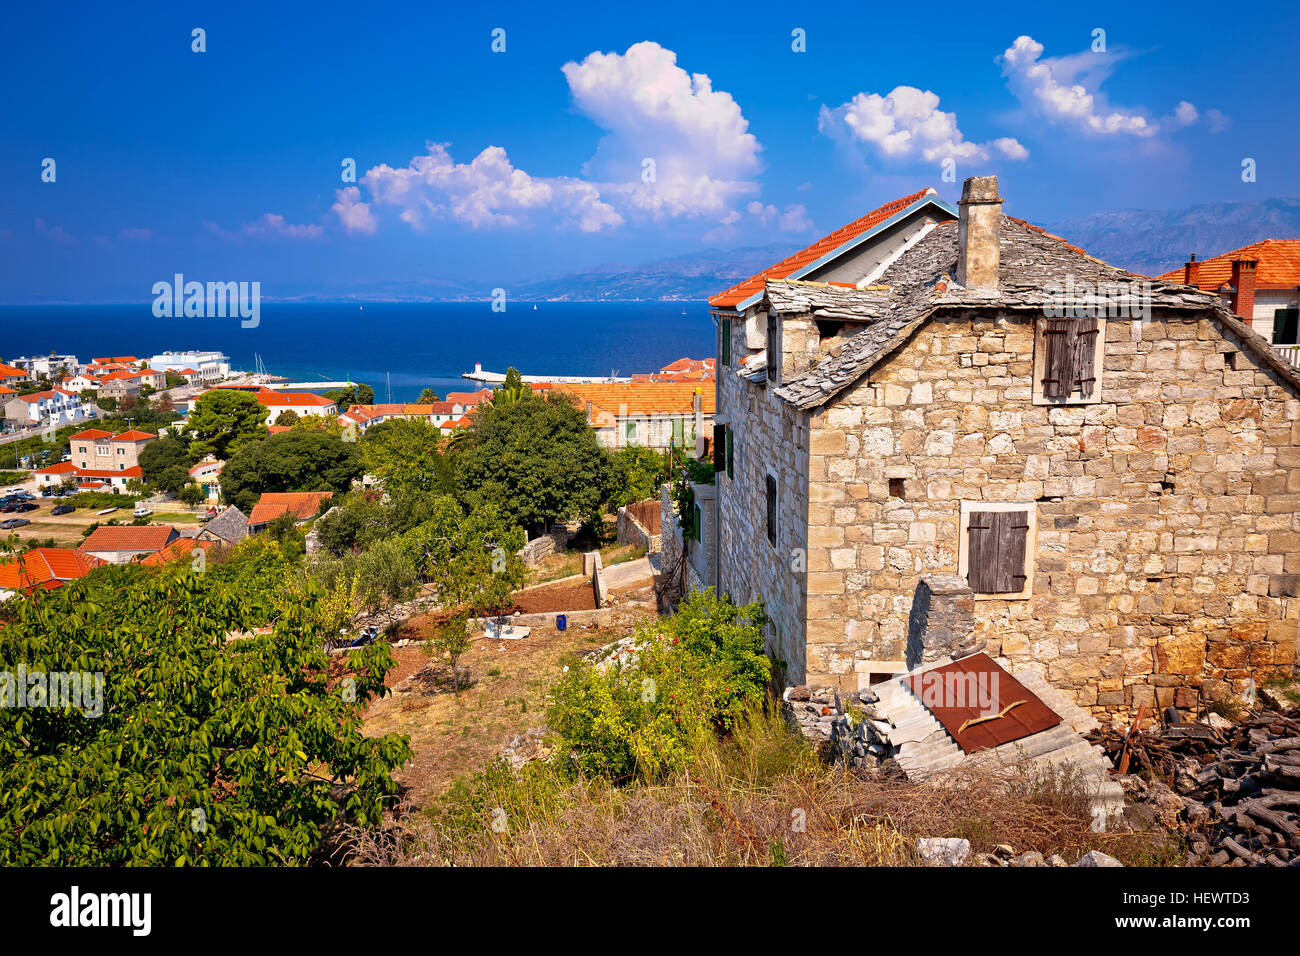 Old stone village Postira on Brac island, coast of Dalmatia, Croatia Stock Photo